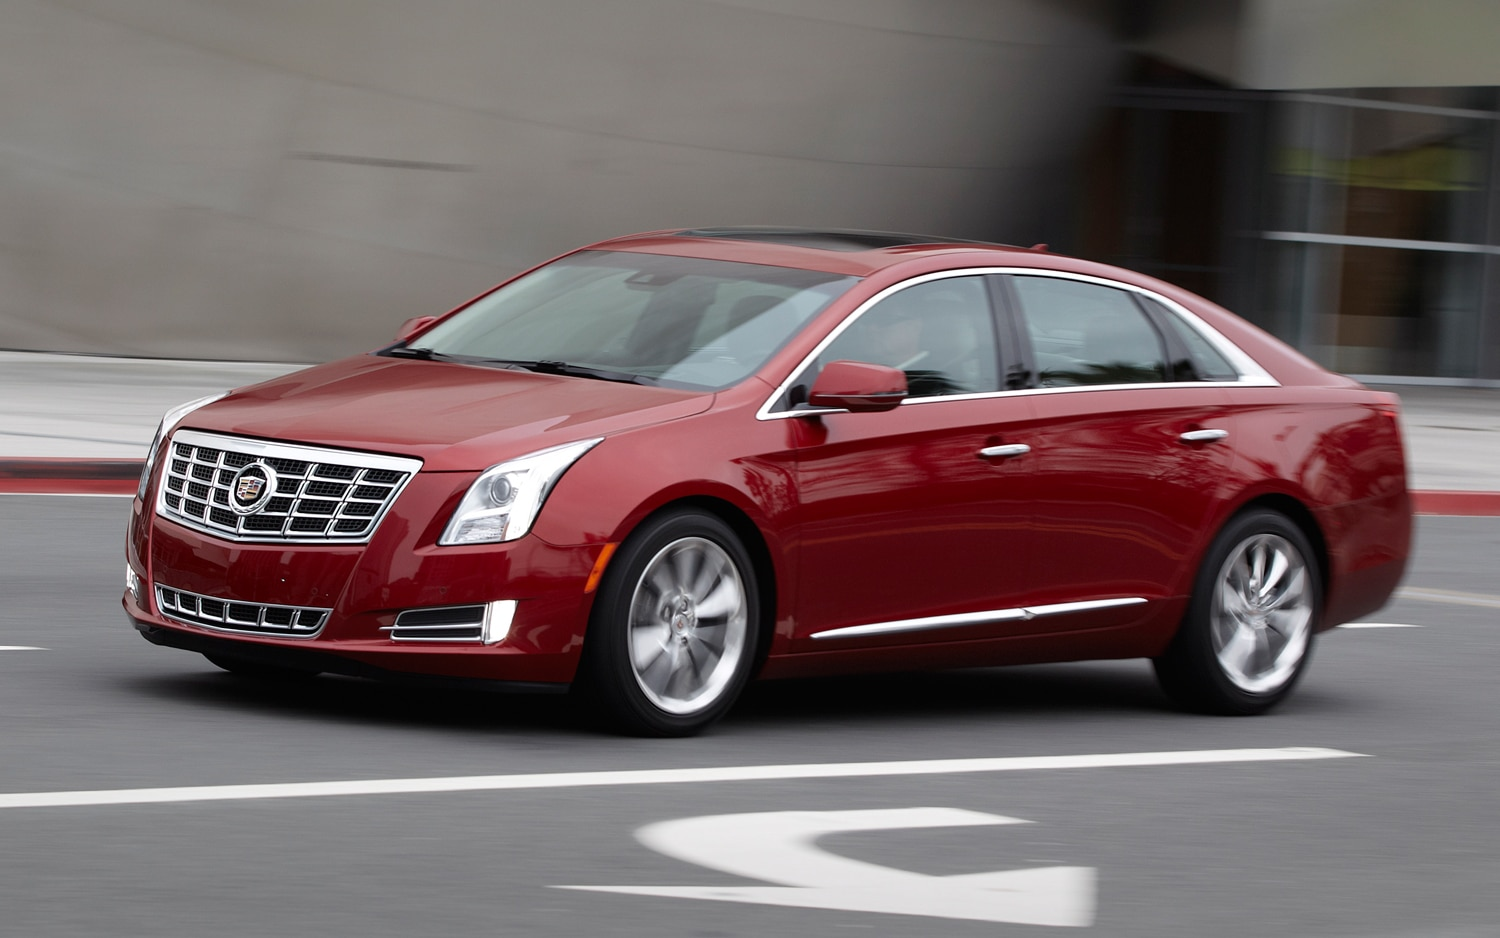 2013 Cadillac XTS Front View In Motion1